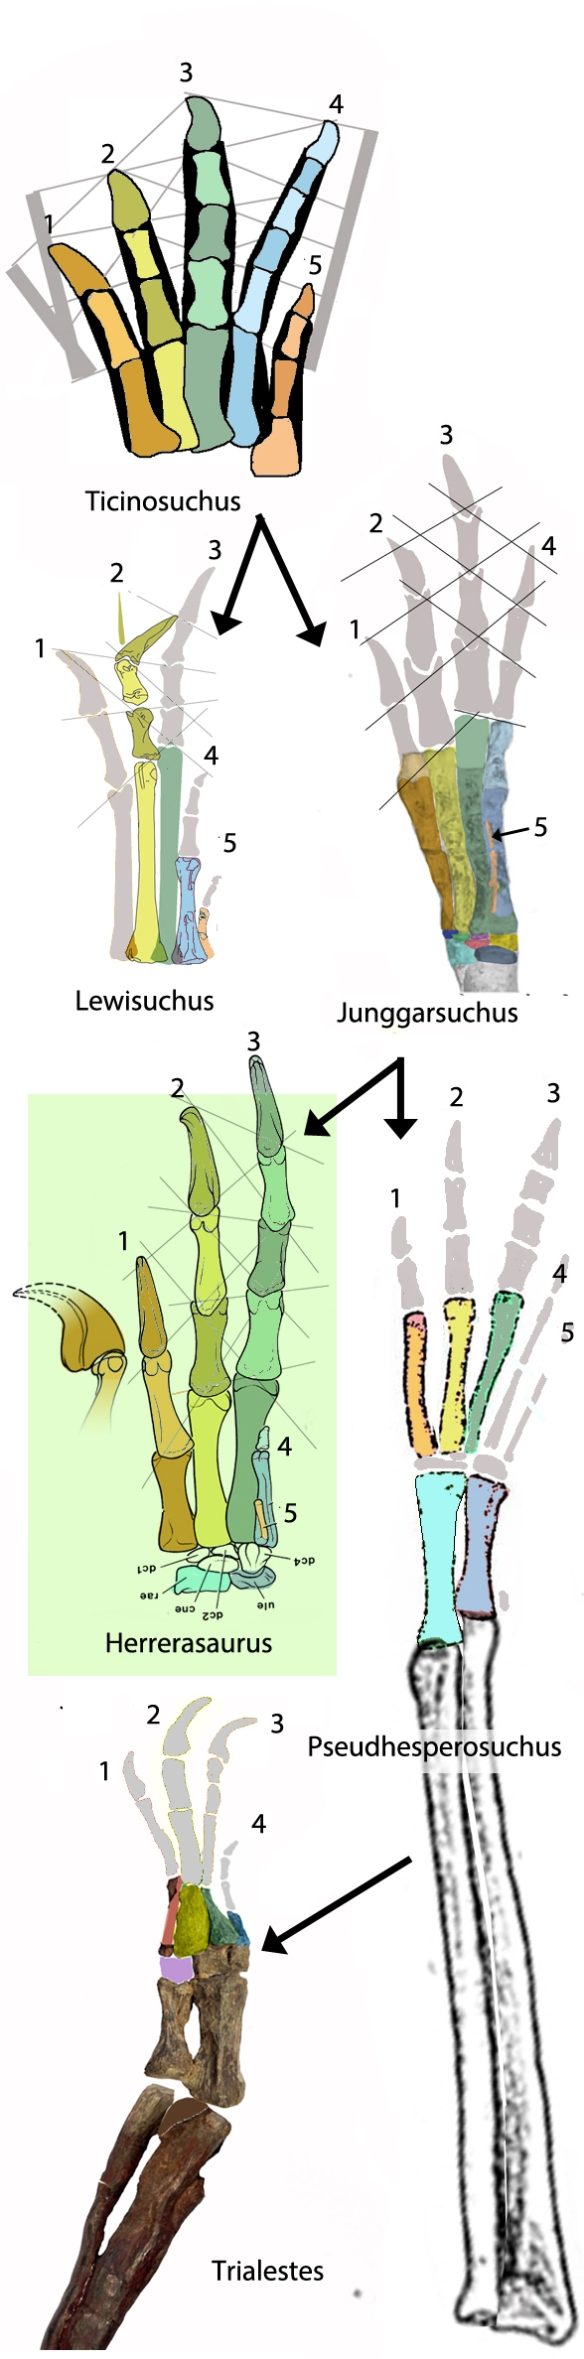 Figure 3. Hands of Lewisuchus, Herrerasaurus, Junggarsuchus, Pseudhesperosuchus and Trialestes. The proximal carpals (radiale and ulnare) were elongate by convergence with a line of crocodylomorphs. This has confused paleontologists and mentally removed them from possible ancestry to the Dinosauria. Note the very short proximal carpals in Junggarsuchus.